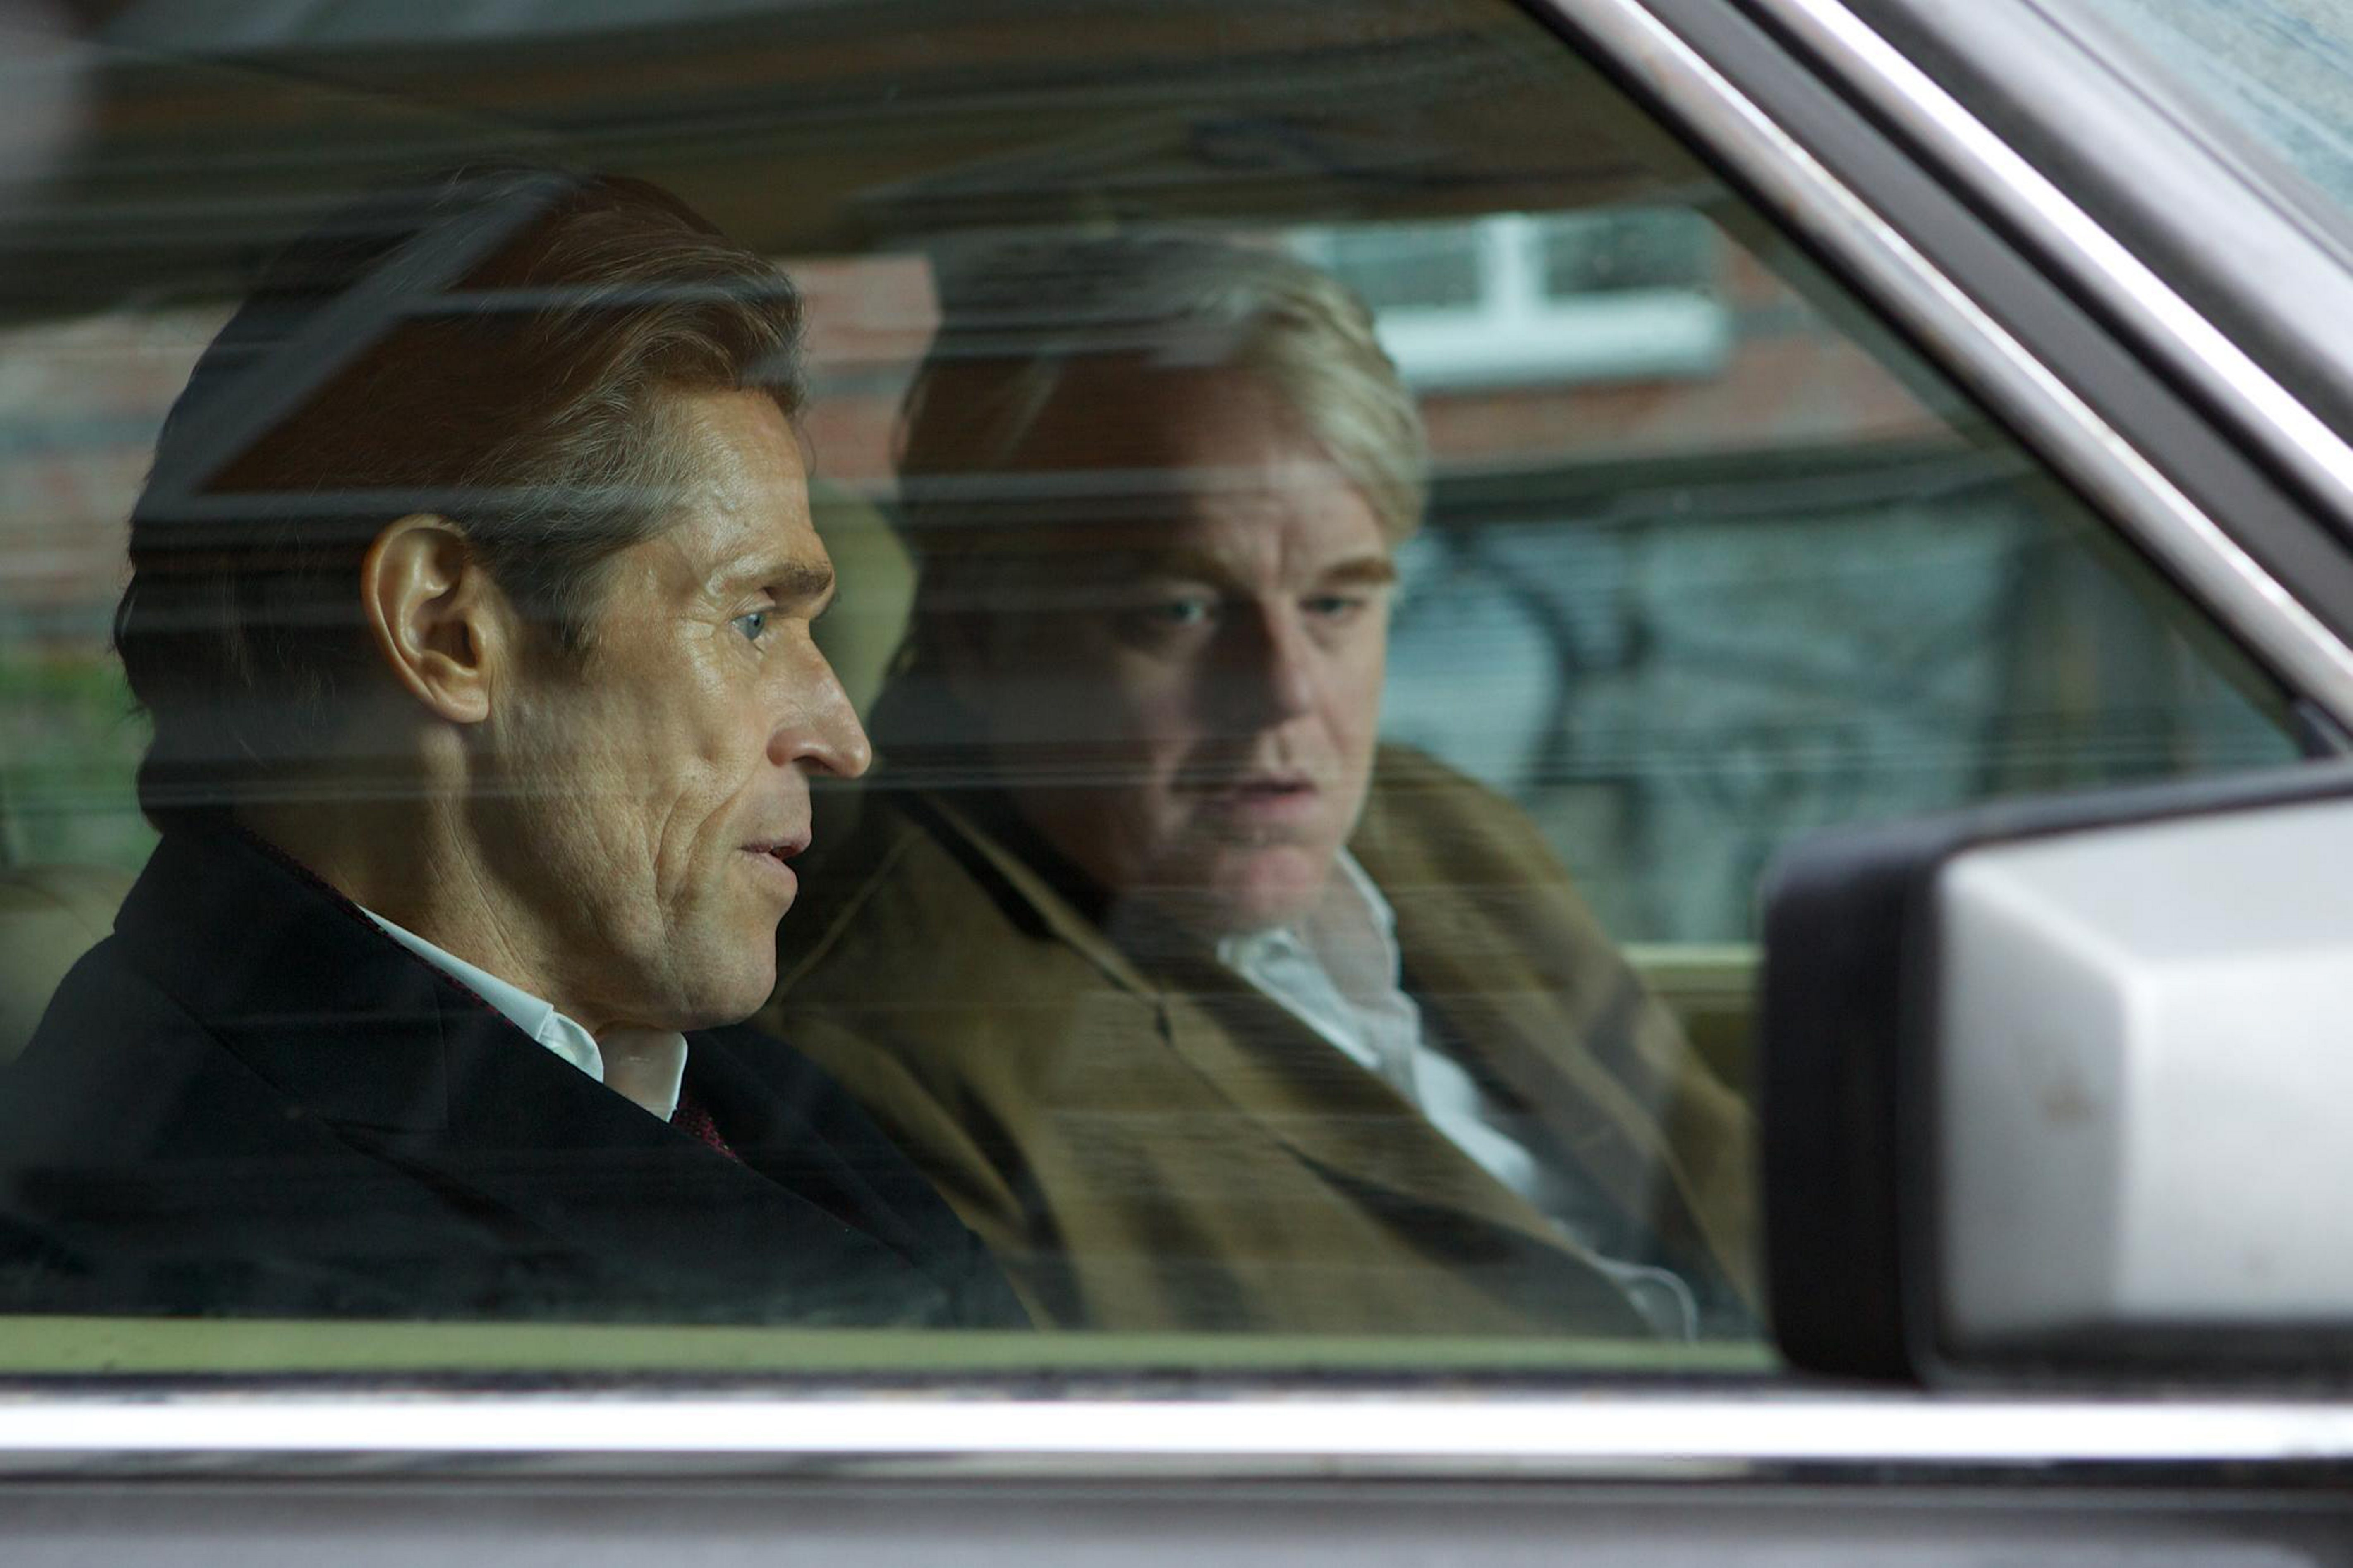 Willem Dafoe, left, and Philip Seymour Hoffman excel as John le Carré characters.